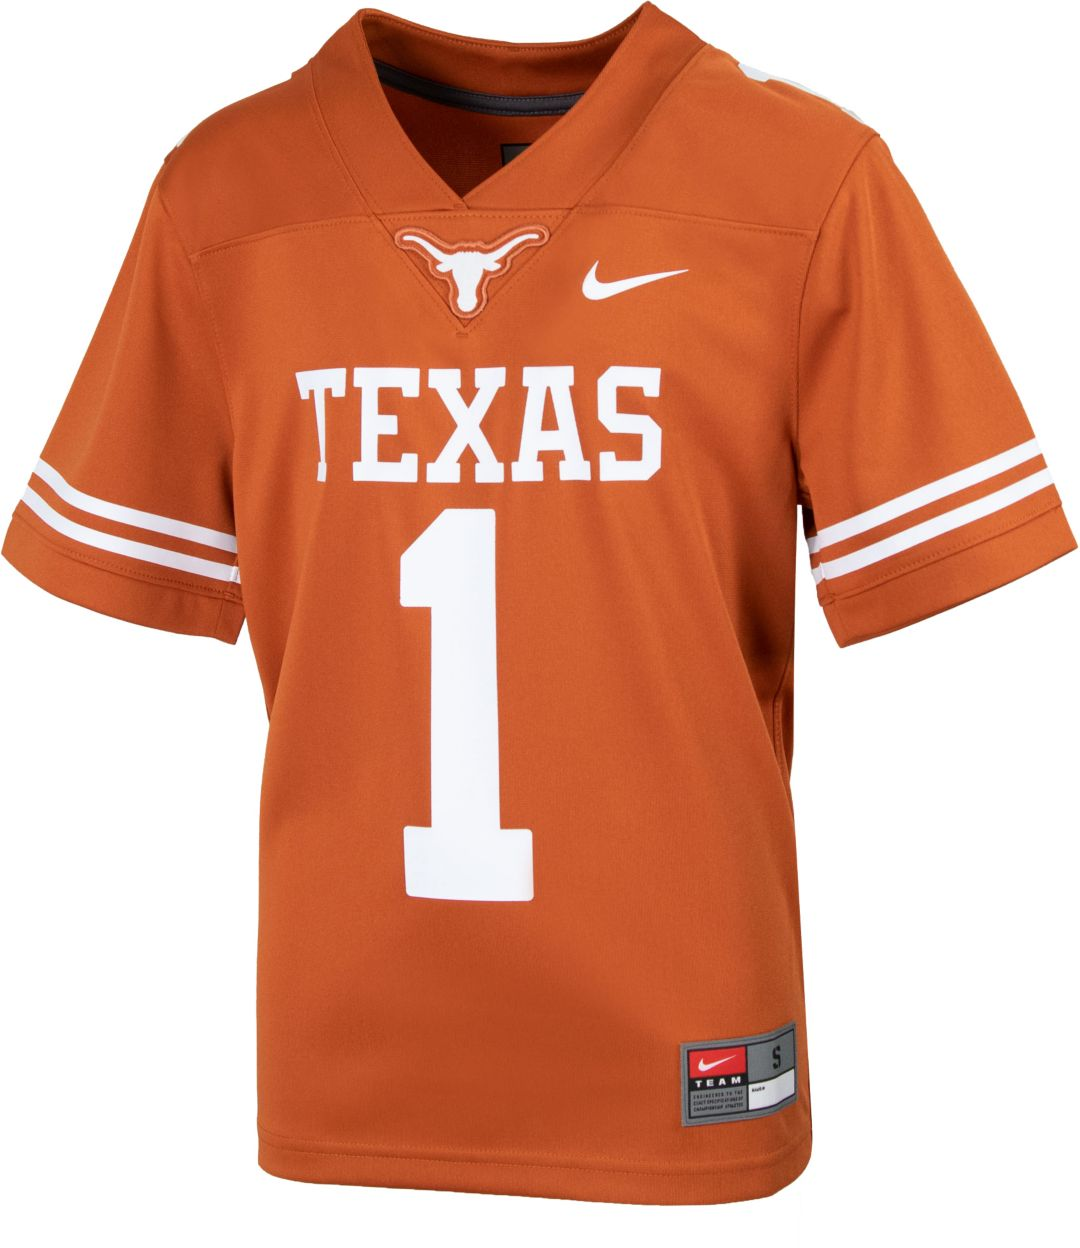 uk availability a8989 2a657 Nike Youth Texas Longhorns #1 Burnt Orange Replica Football Jersey